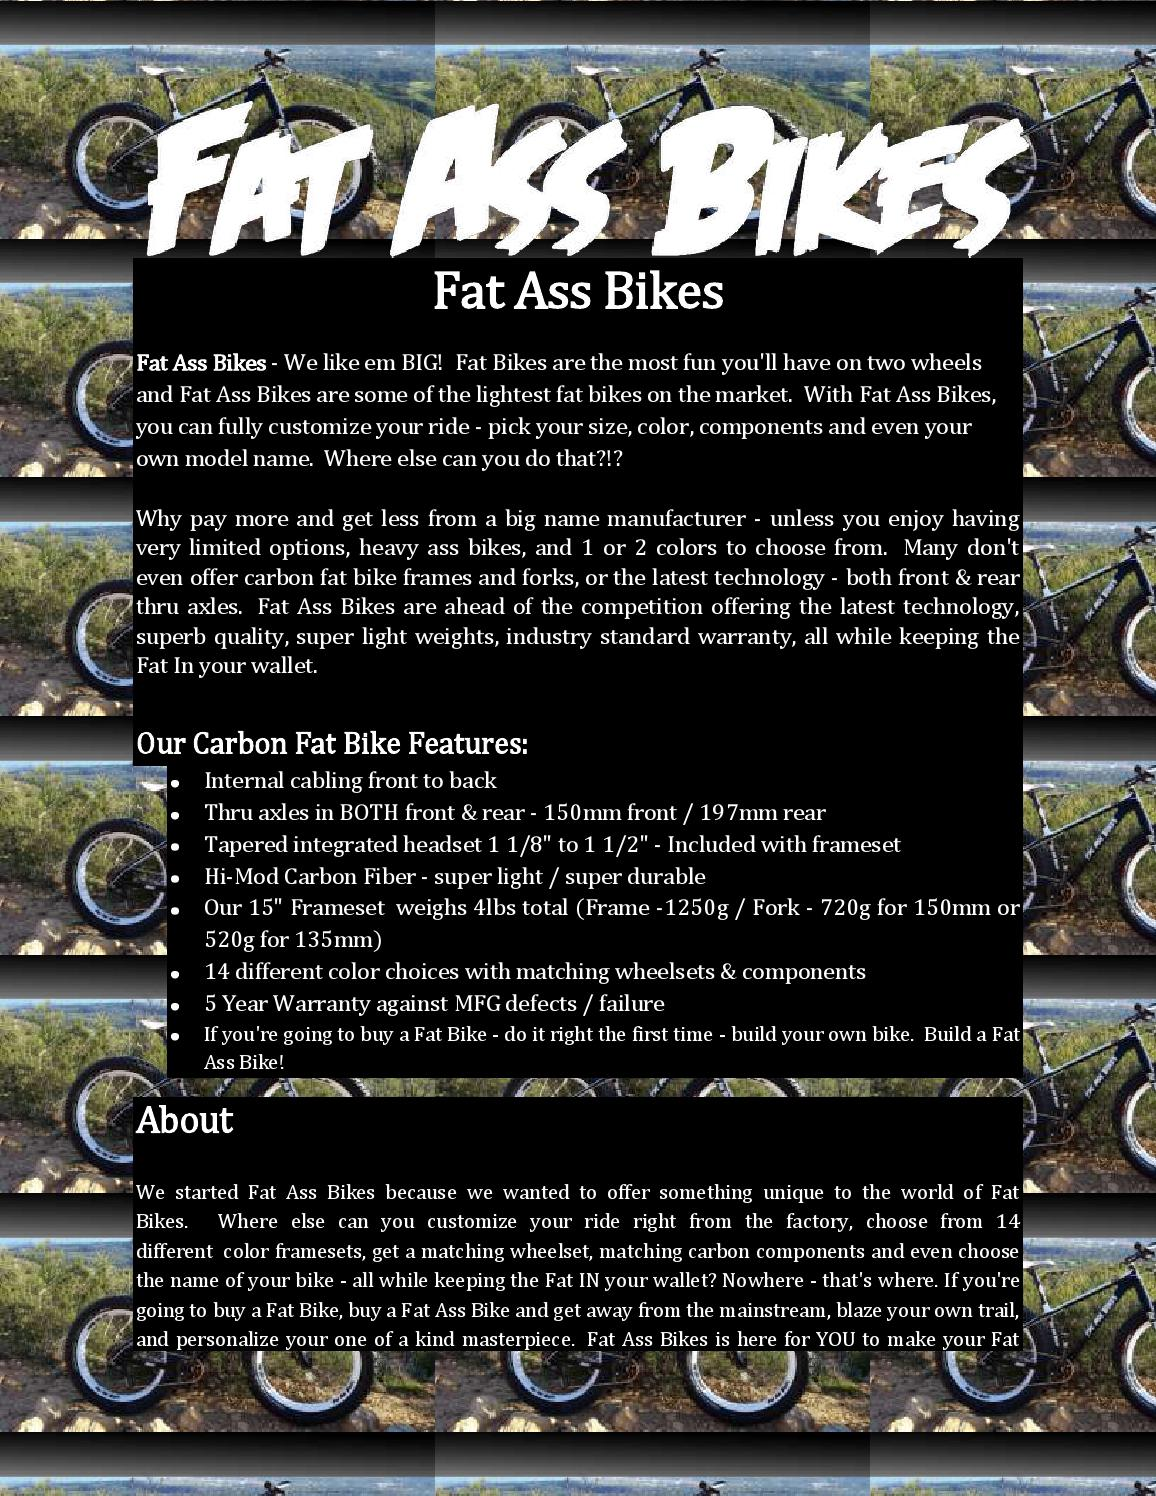 fat ass bikesfatassbikes - issuu